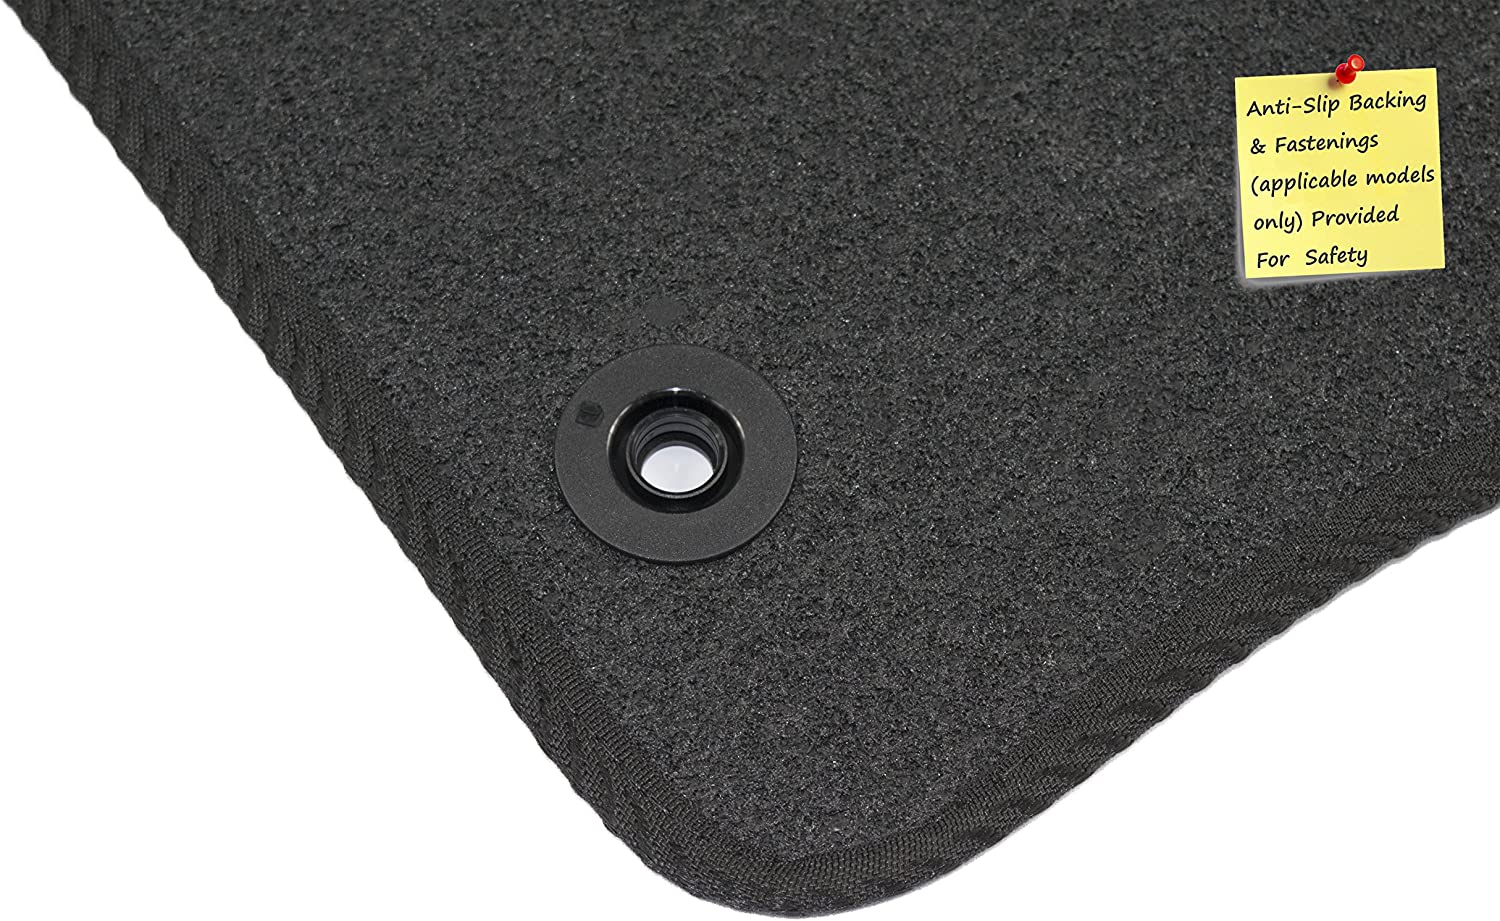 Connected Essentials 5006635 Tailored Heavy Duty Custom Fit Car Mats Premium for A6 C5 Set of 4 Black with Black Trim 1997-2003